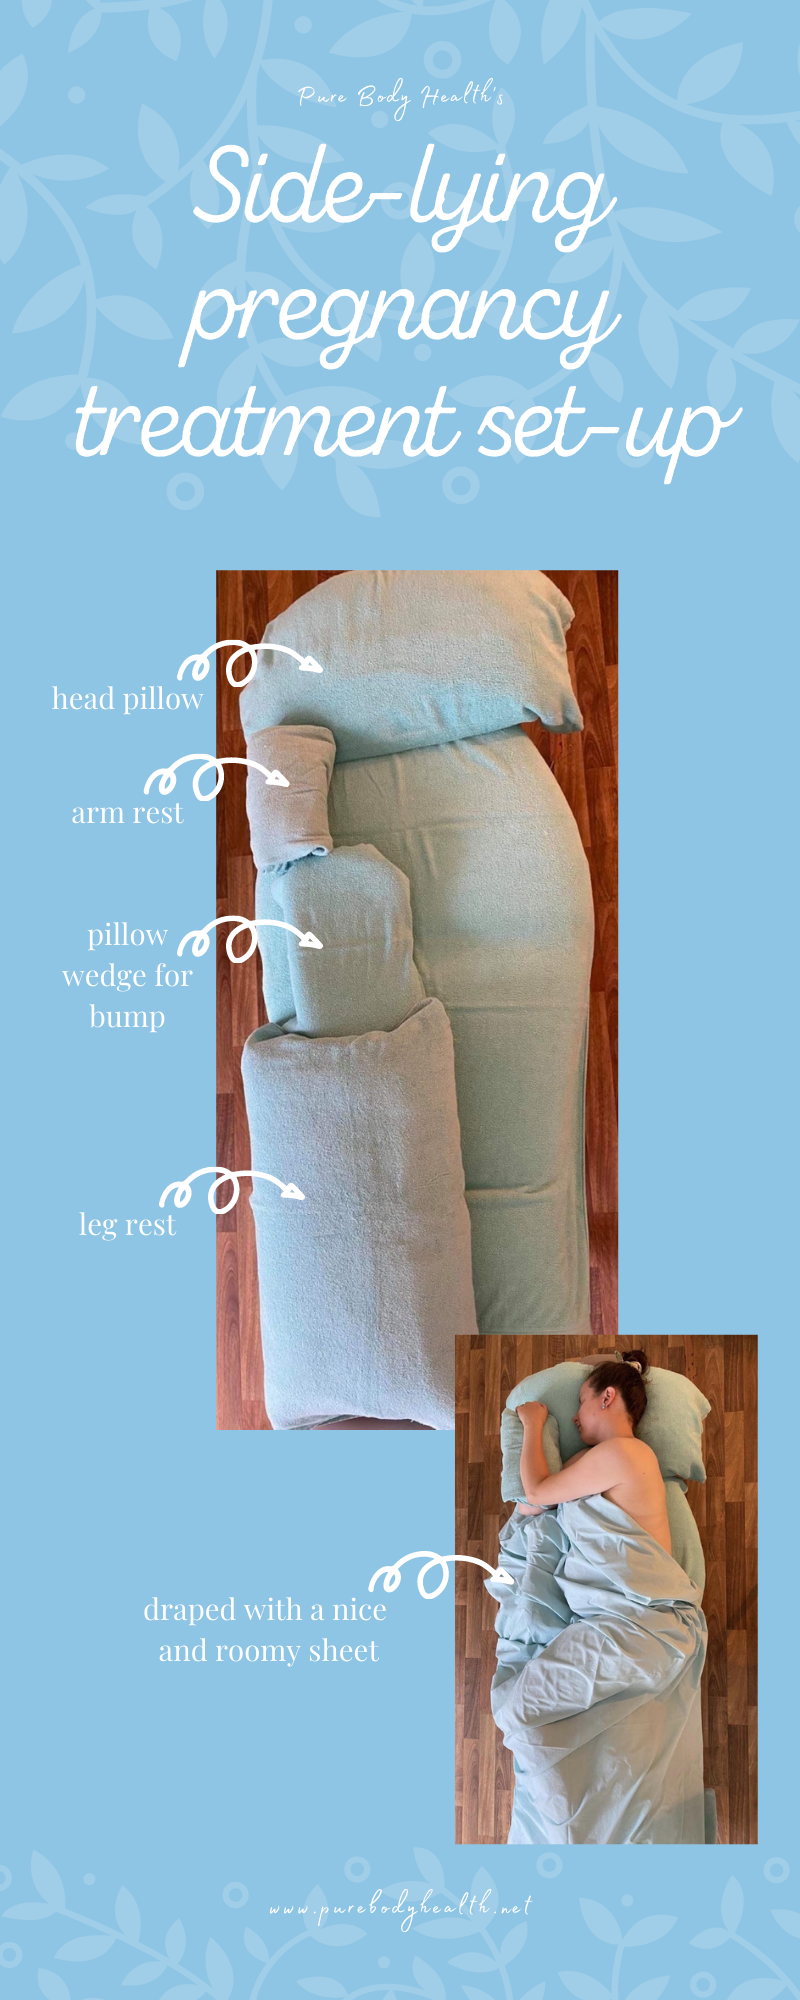 Infographic displaying side-lying treatment table set-up for pregnancy myotherapy and massage.